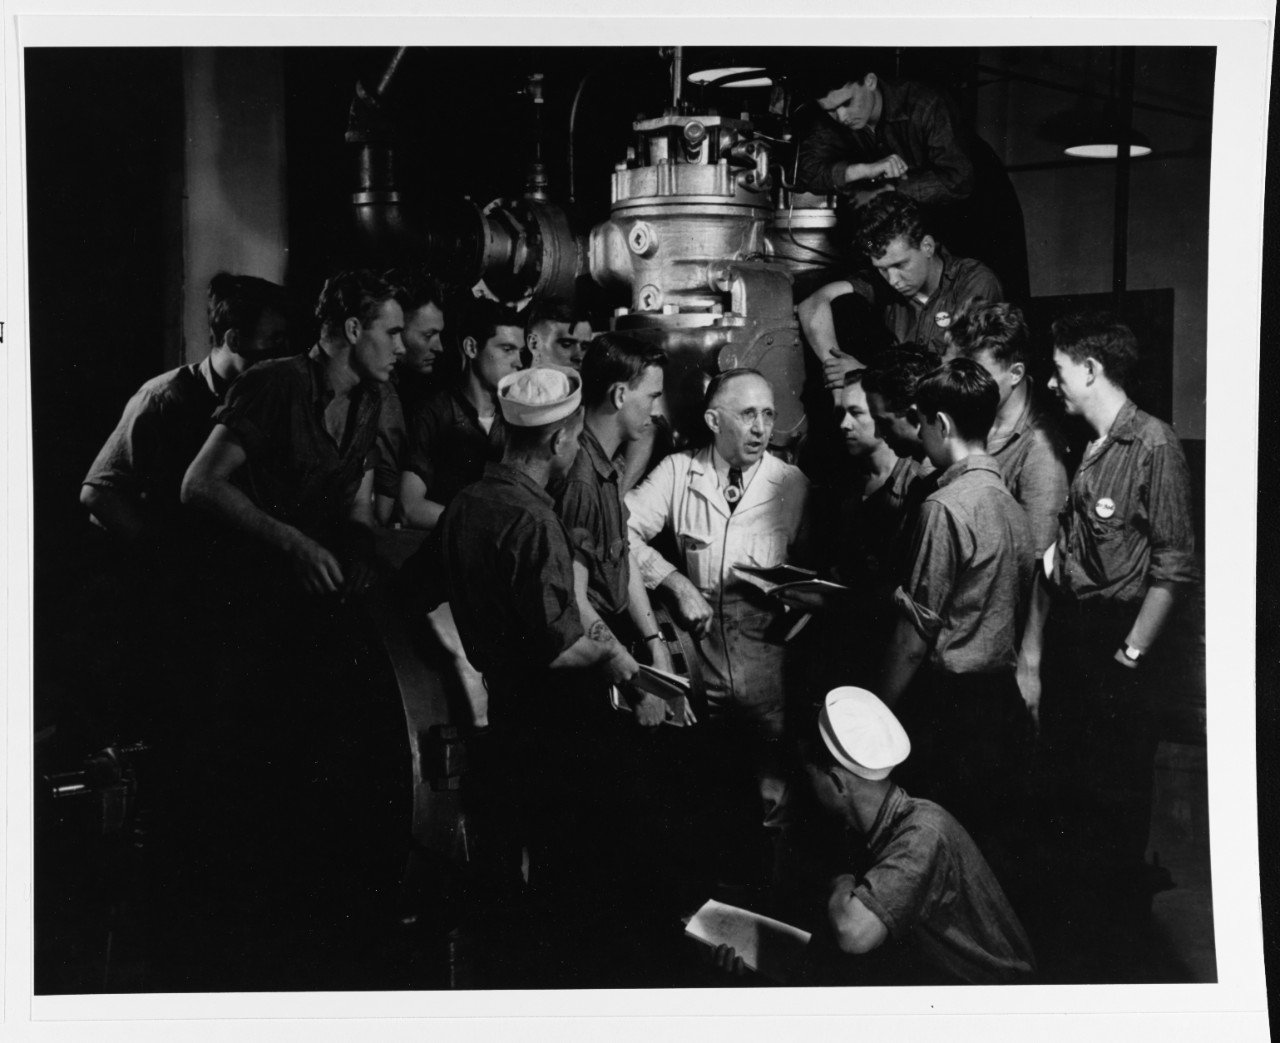 """Navy trainees receive instruction at the """"Diesel School"""" at Navy Pier in 1942. The government took over the huge facility and converted it into a Navy base during World War II."""